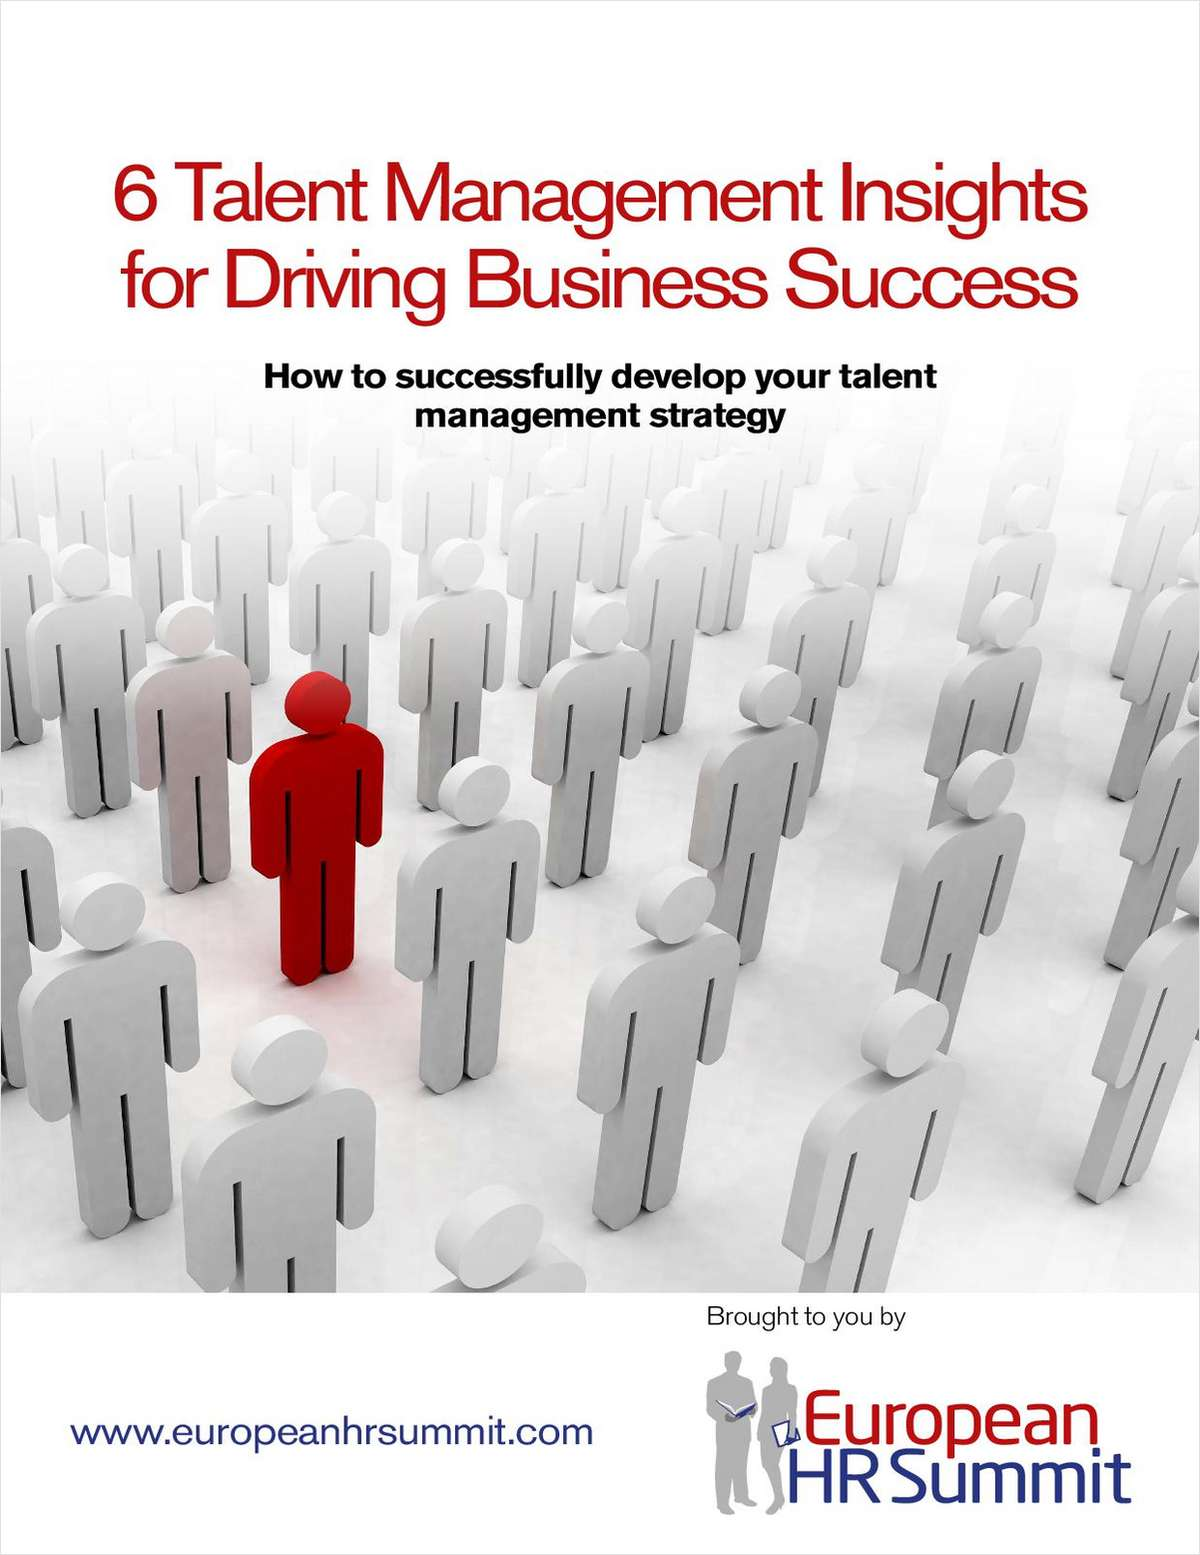 6 Talent Management Insights for Driving Business Success